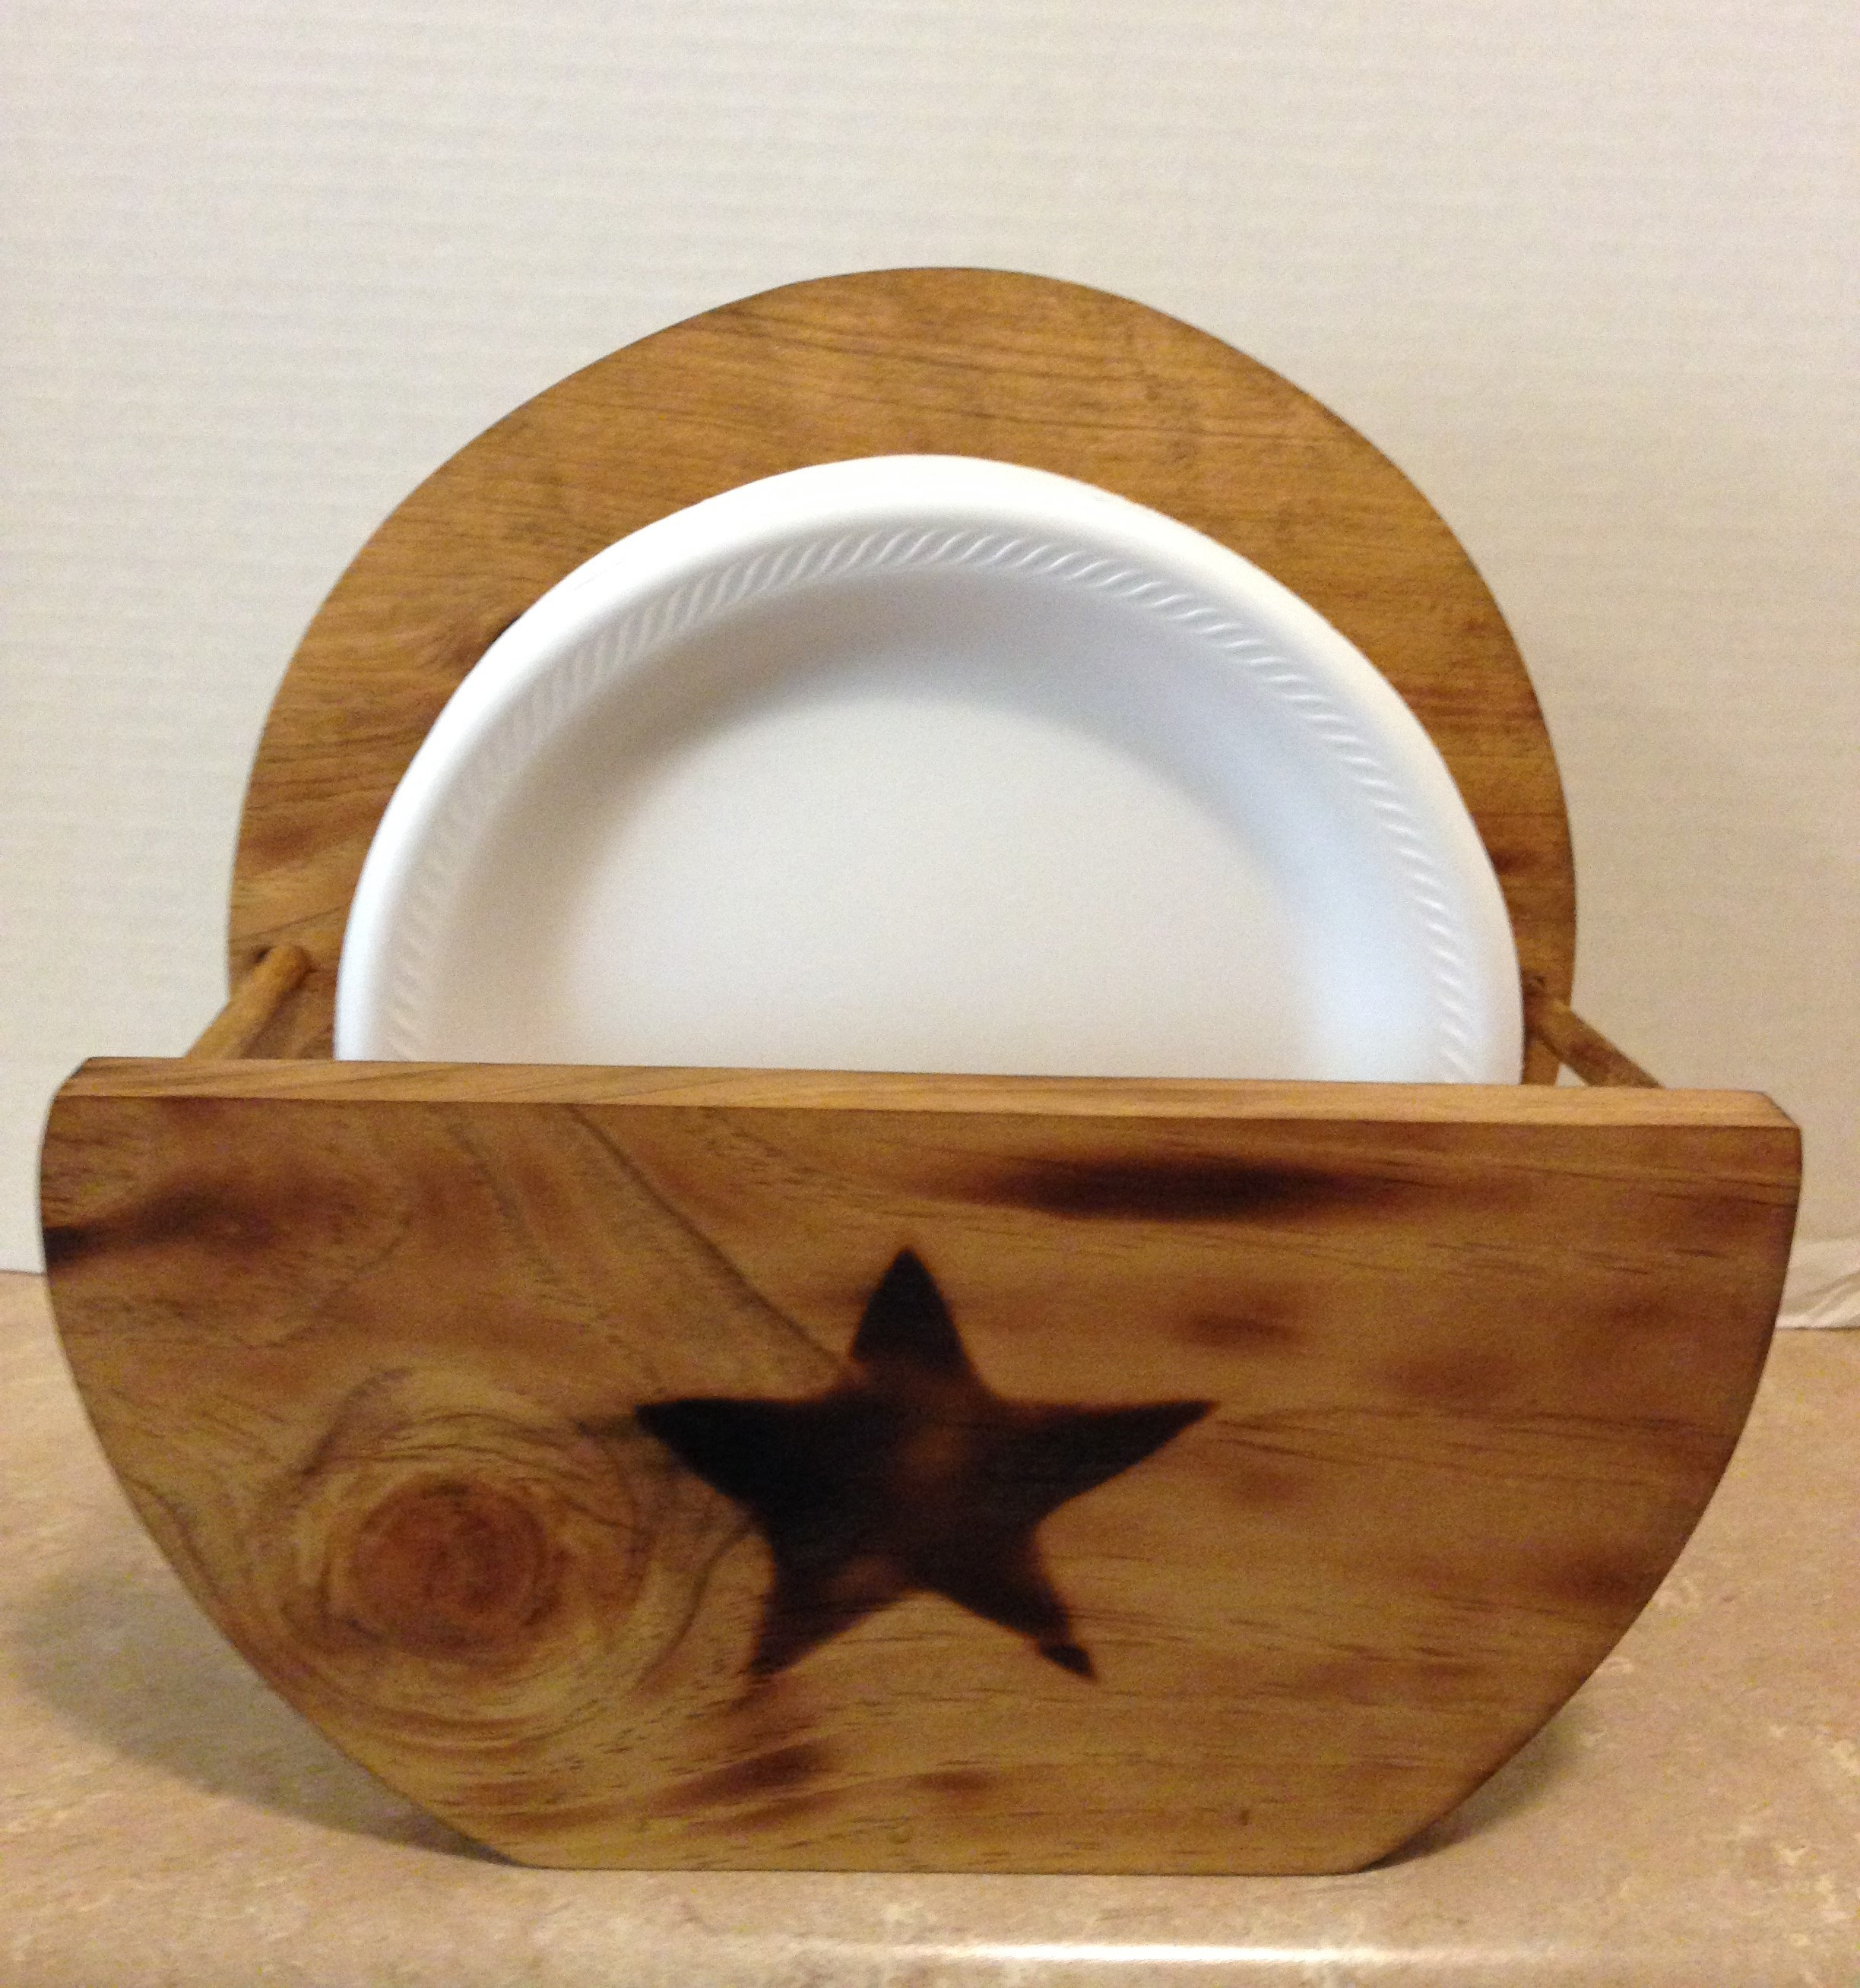 Paper Plate Holder Wooden Plate Holder Holder for plates Primitive Decor Rustic Decor Rustic Kitchen Primitive Kitchen Primitive star & Paper Plate Holder Wooden Plate Holder Holder for plates ...